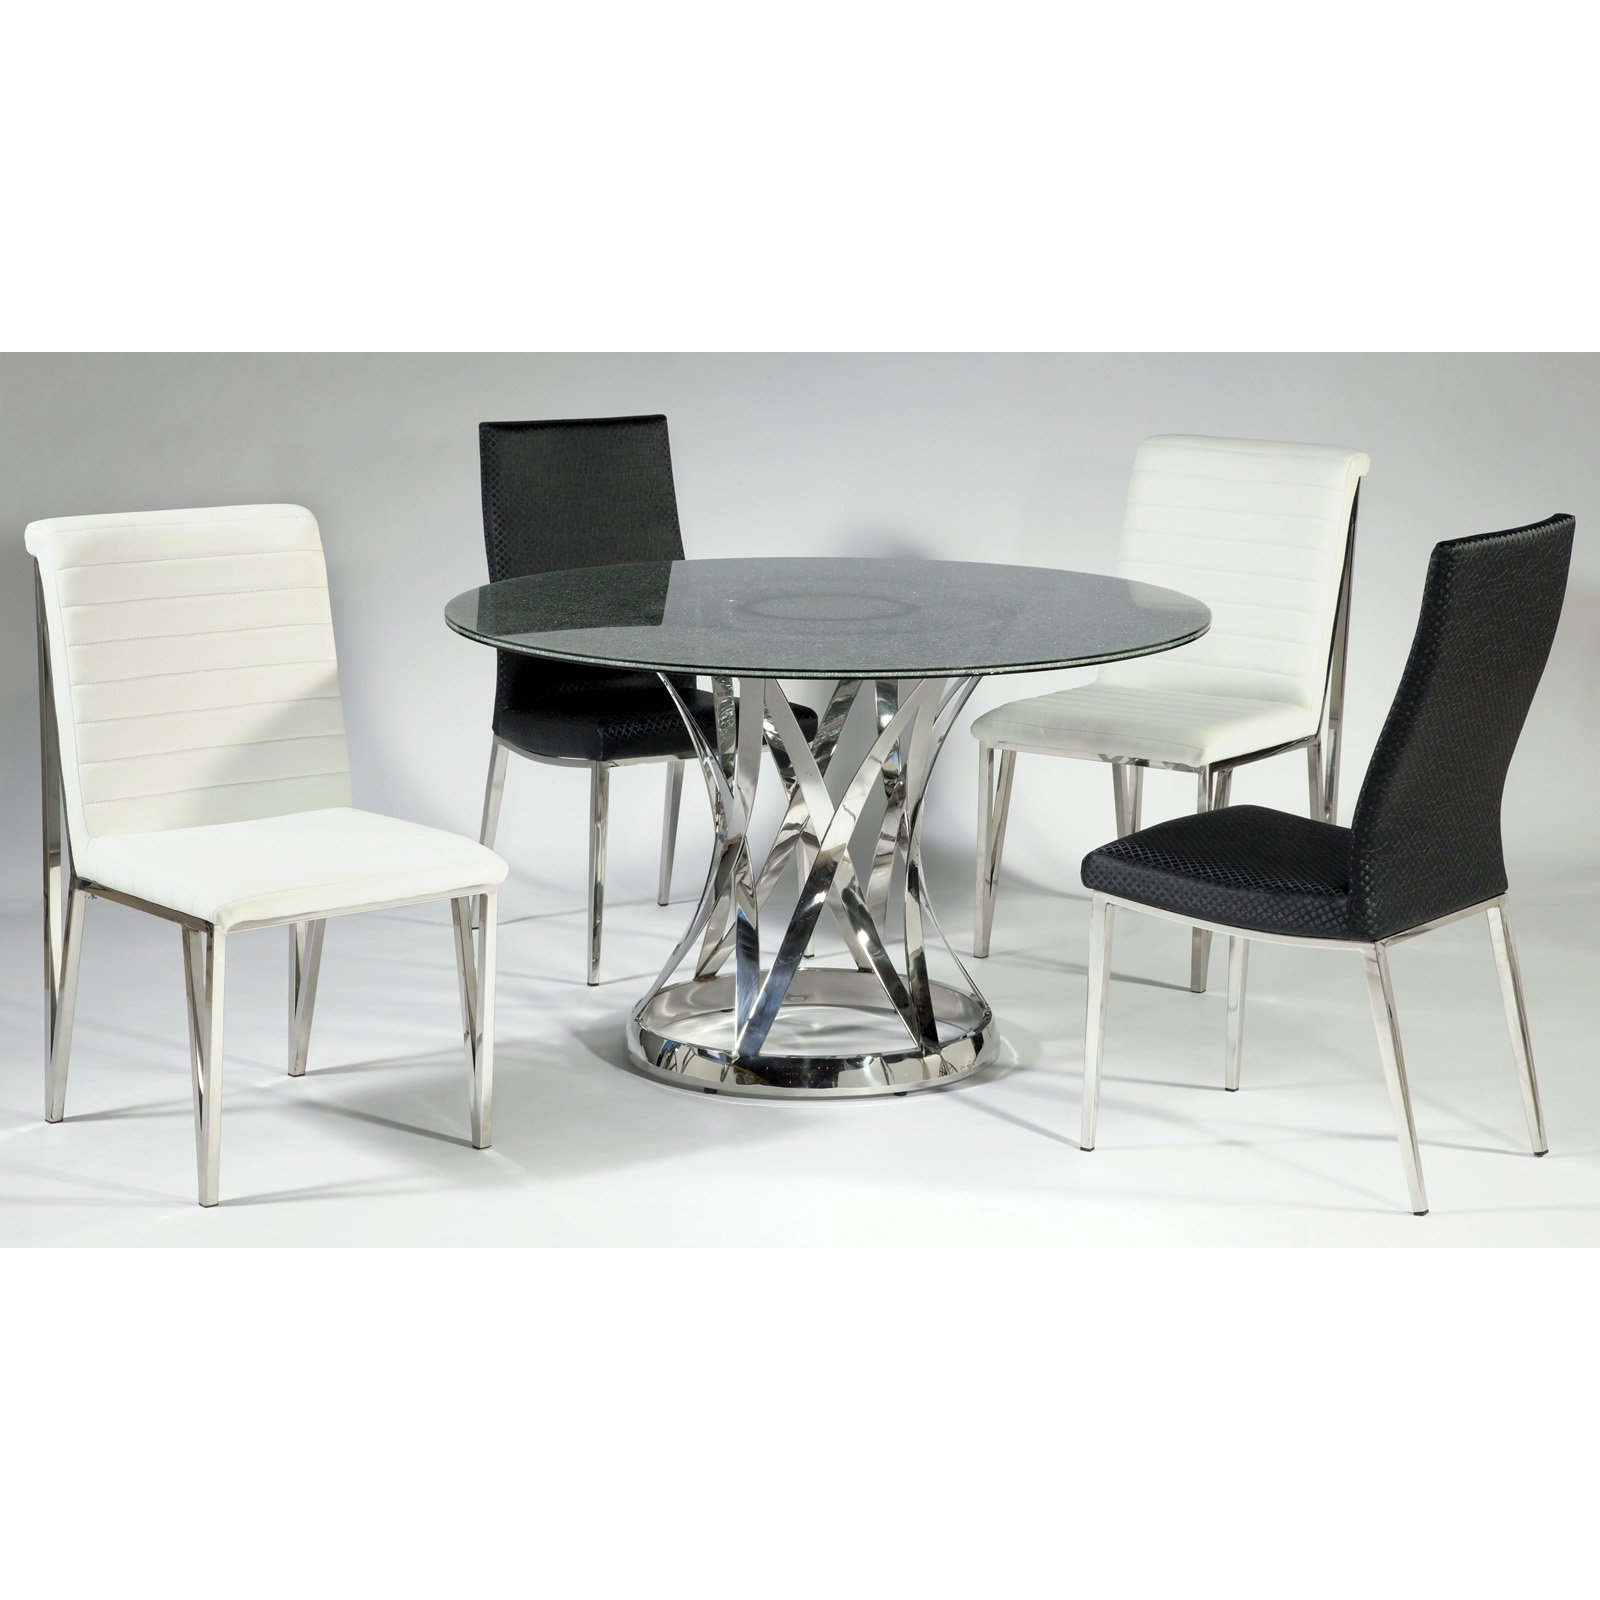 Chintaly Janet 5 Piece Dining Table Set with Crackle Glass Top